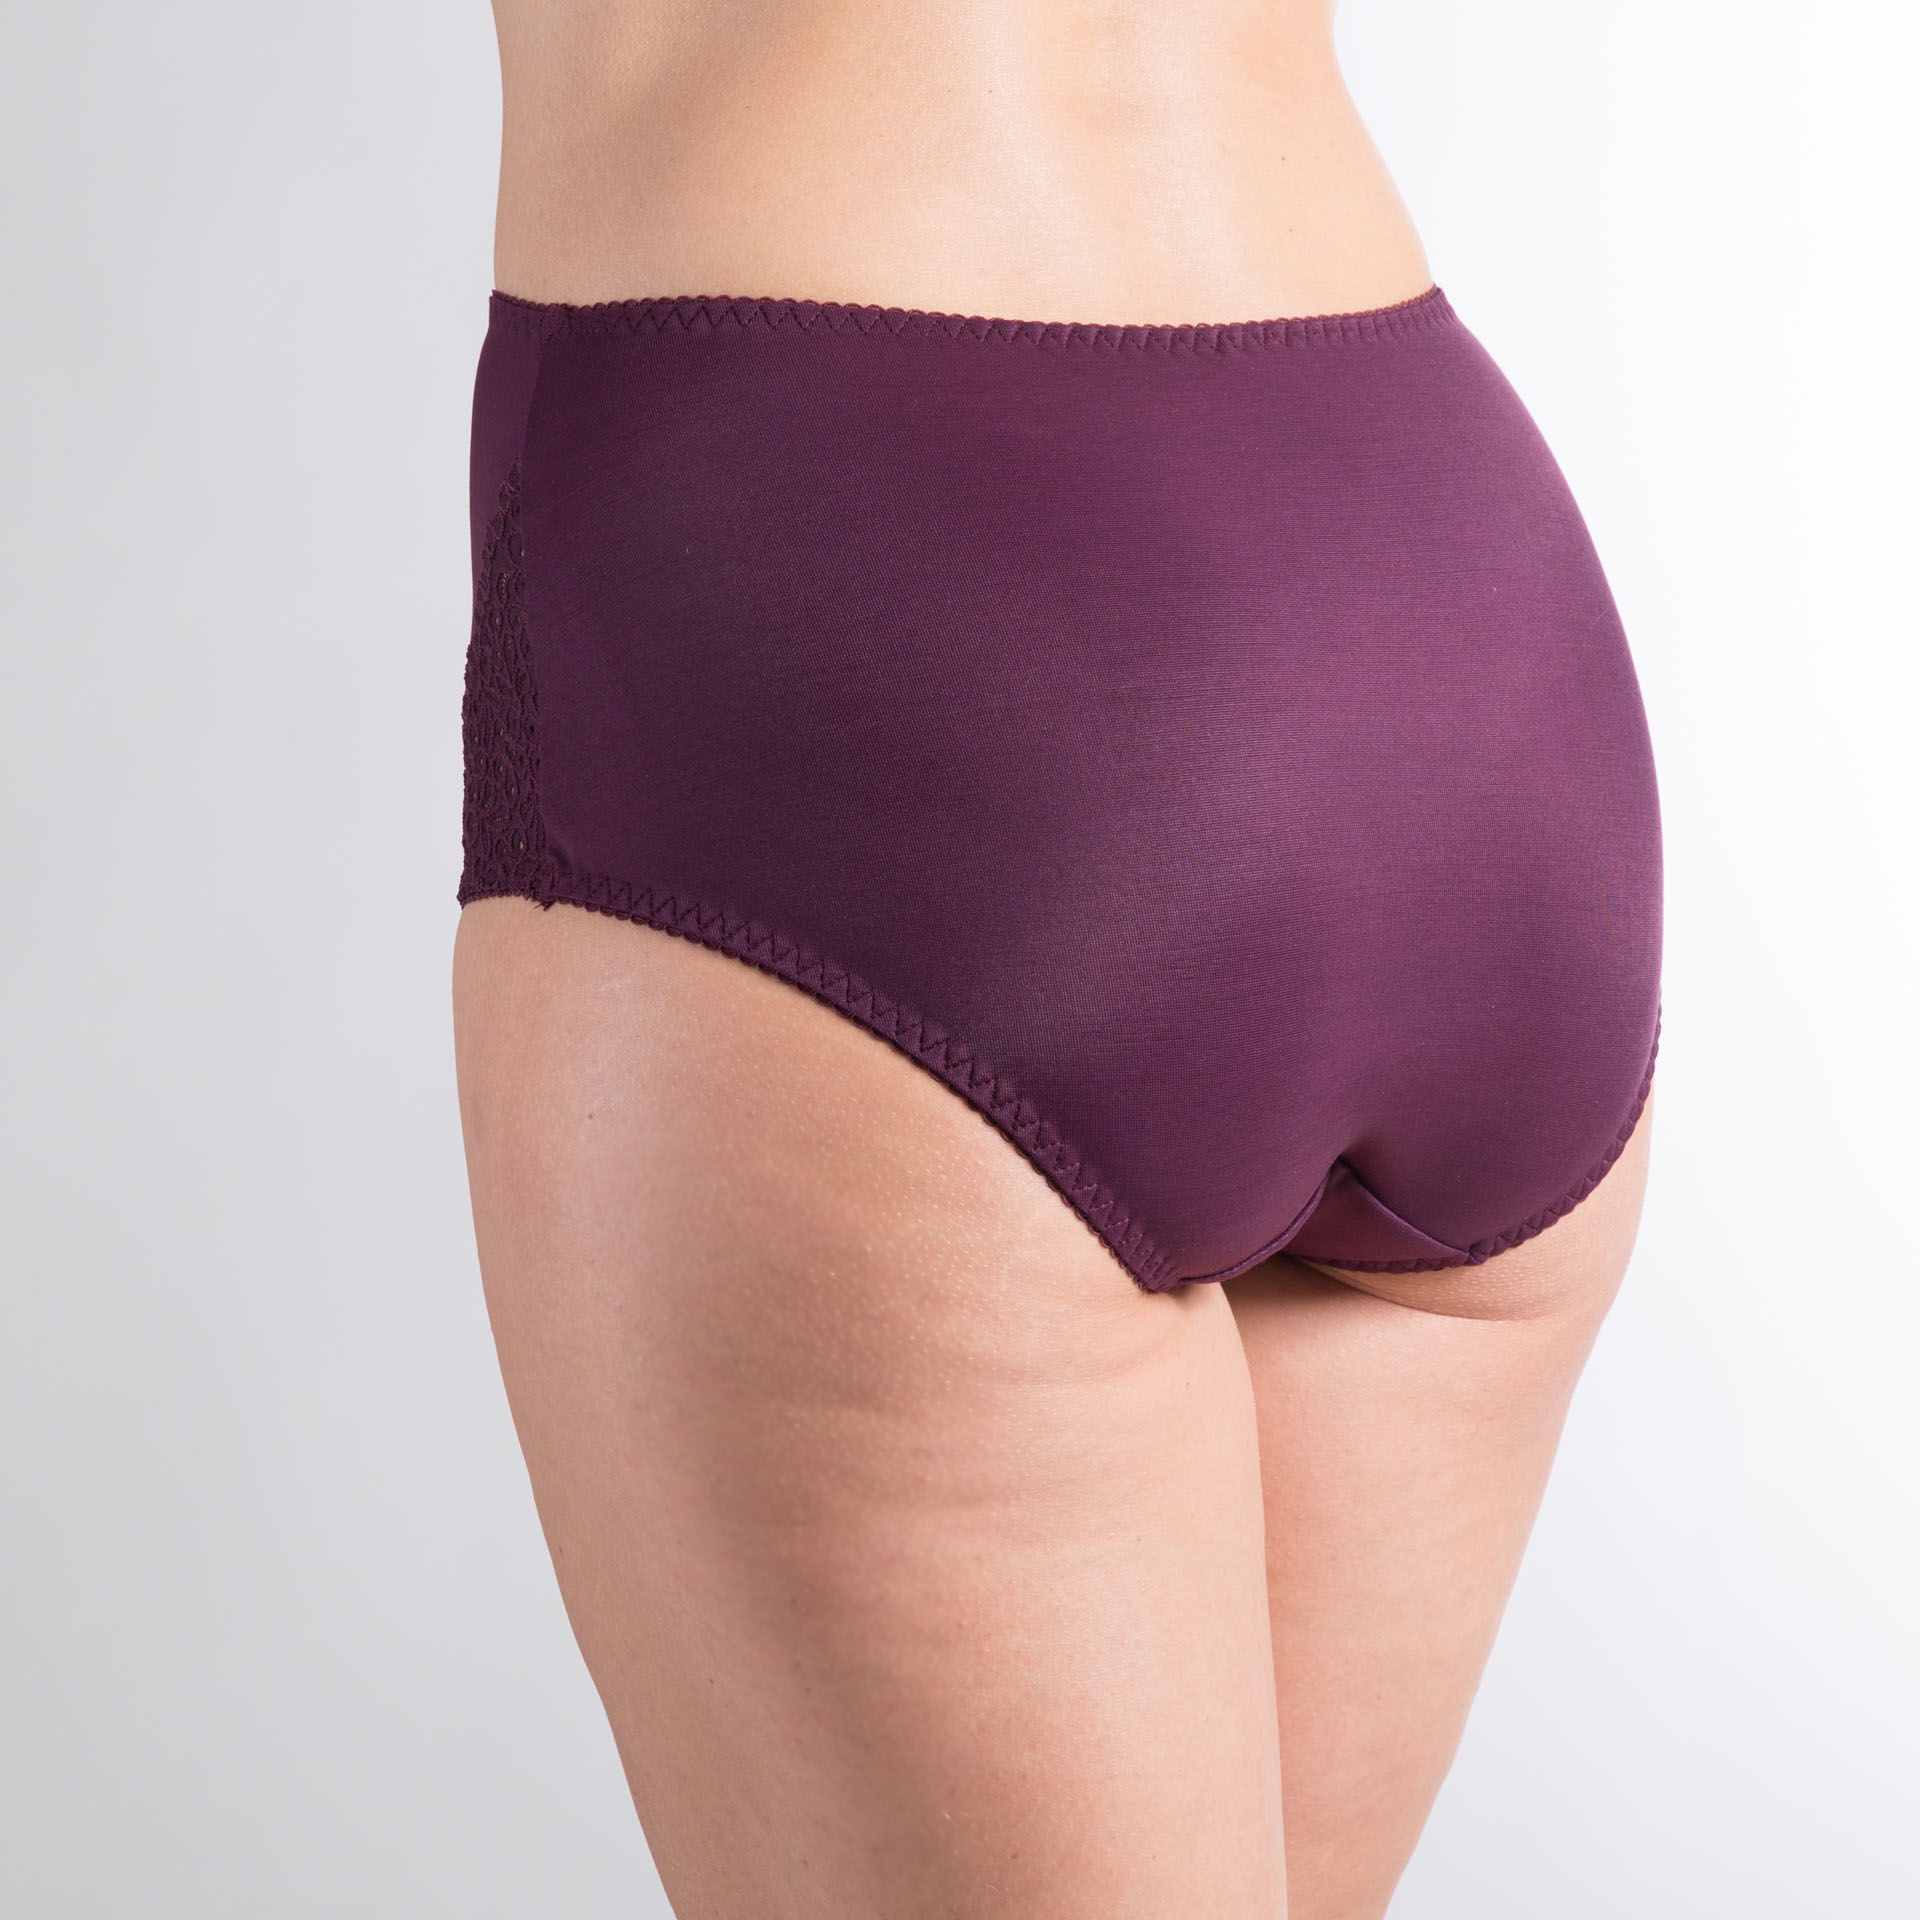 ms pomelo brownie in chief plum brief back main image